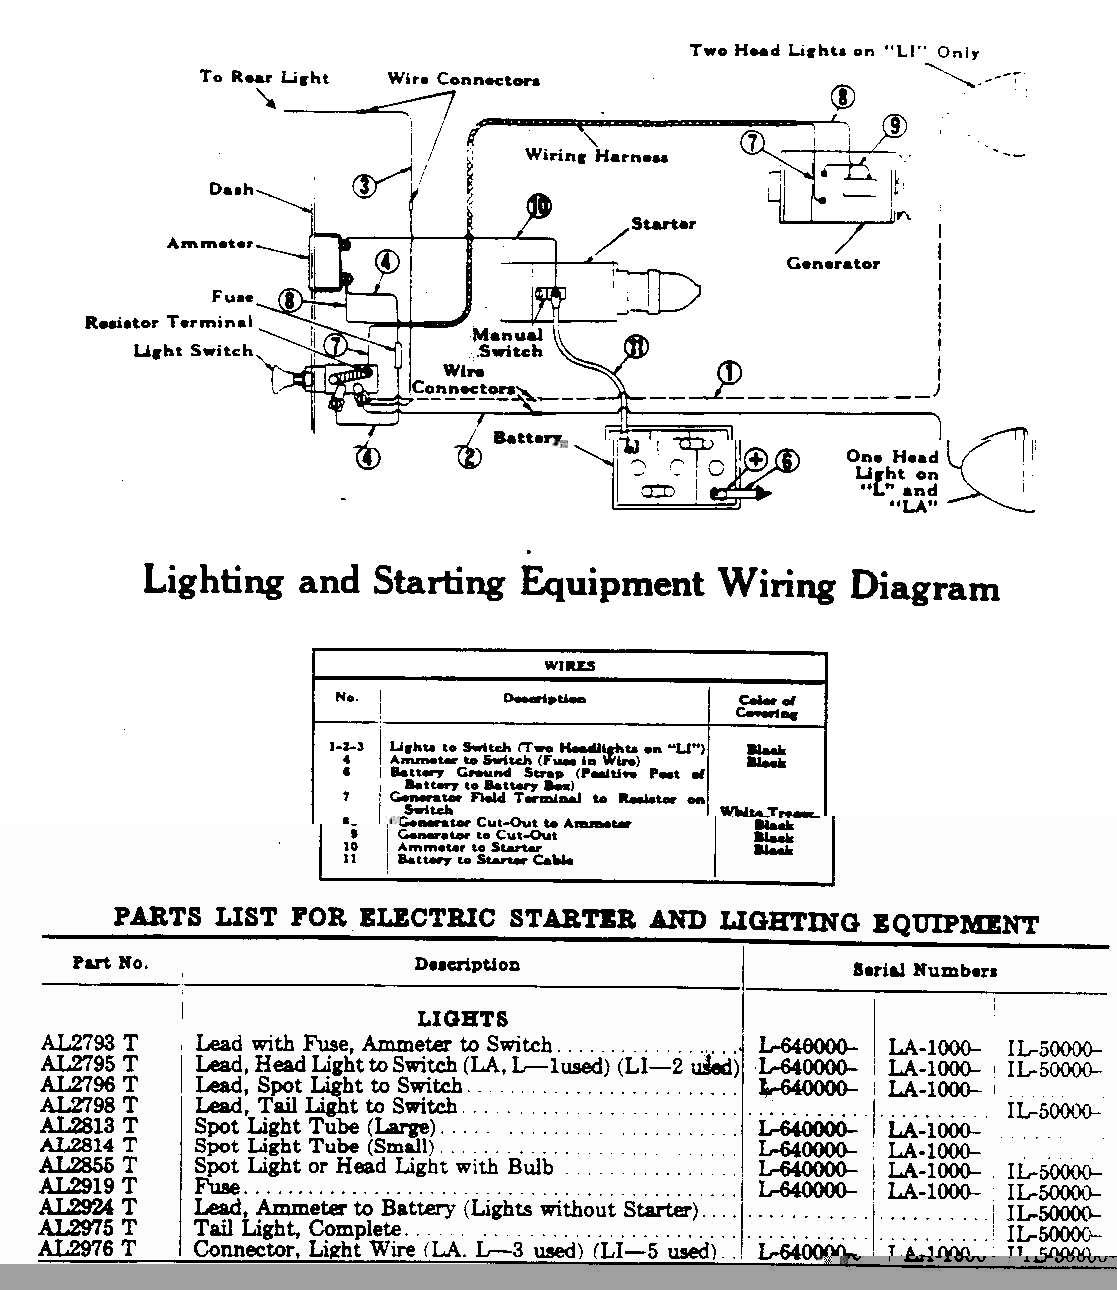 Case Vac Tractor Wiring Diagram Trusted Rusty Acres Ranch Rh Vintagetractors Com 1175 Starter 208 Single Phase